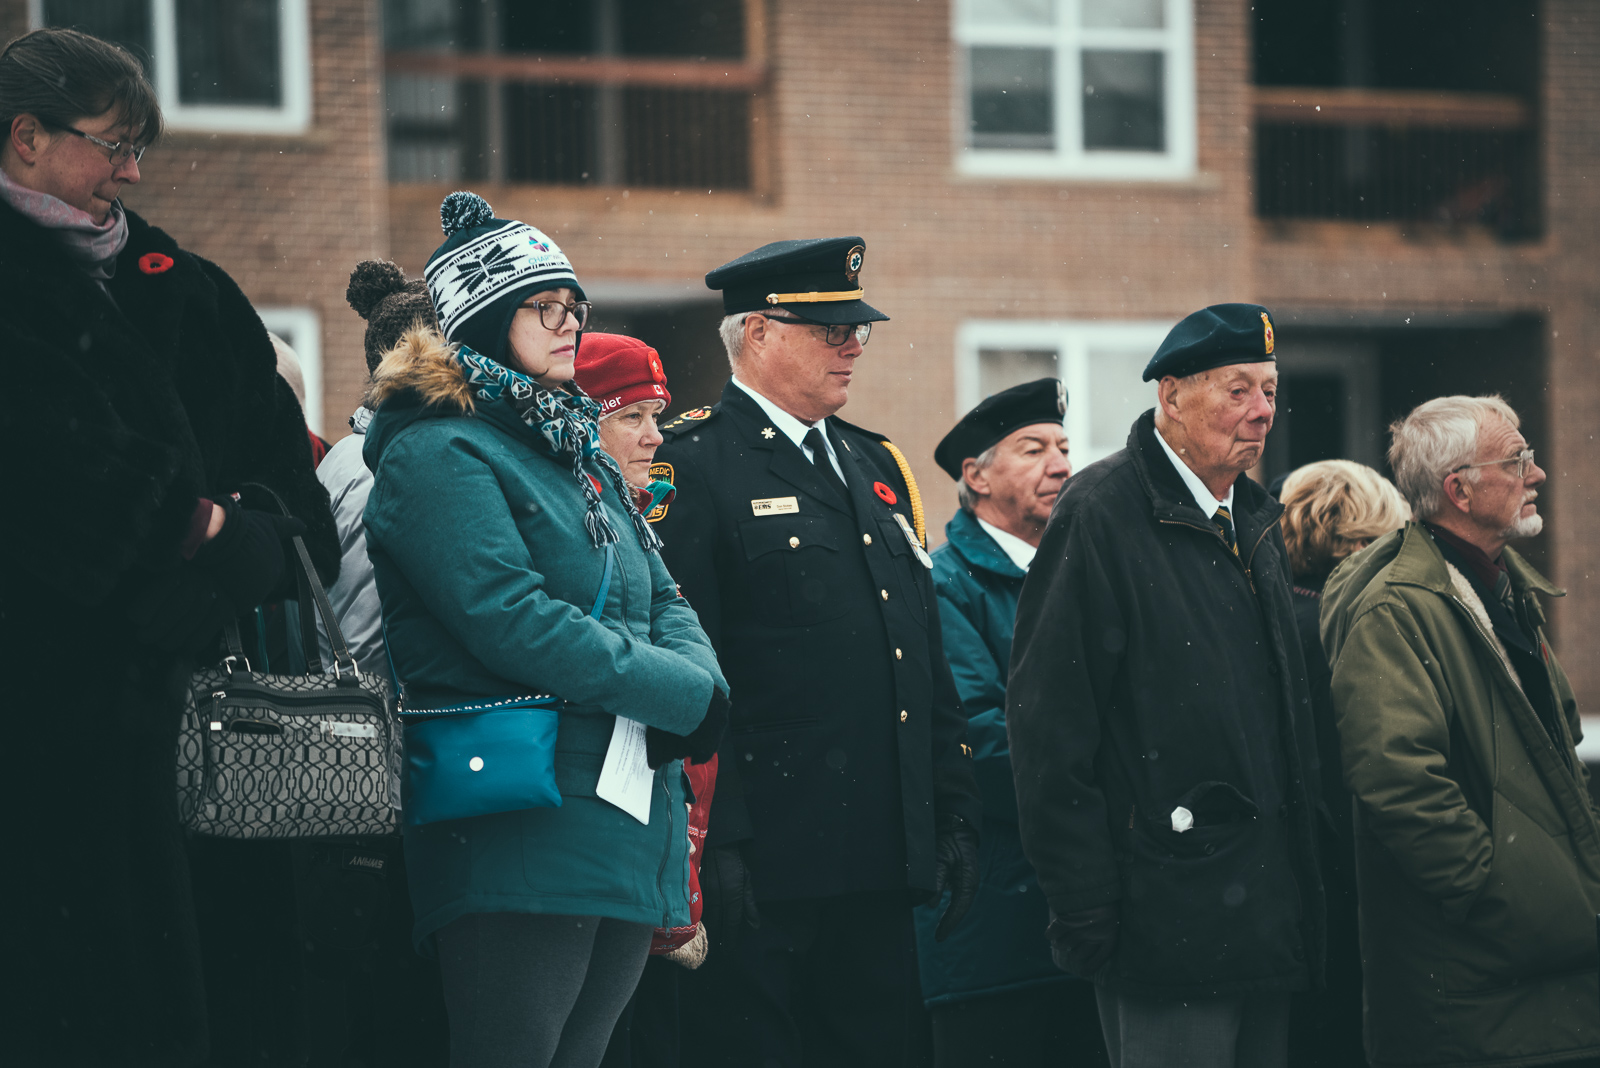 remembrance-day-2018-blog-62.jpg